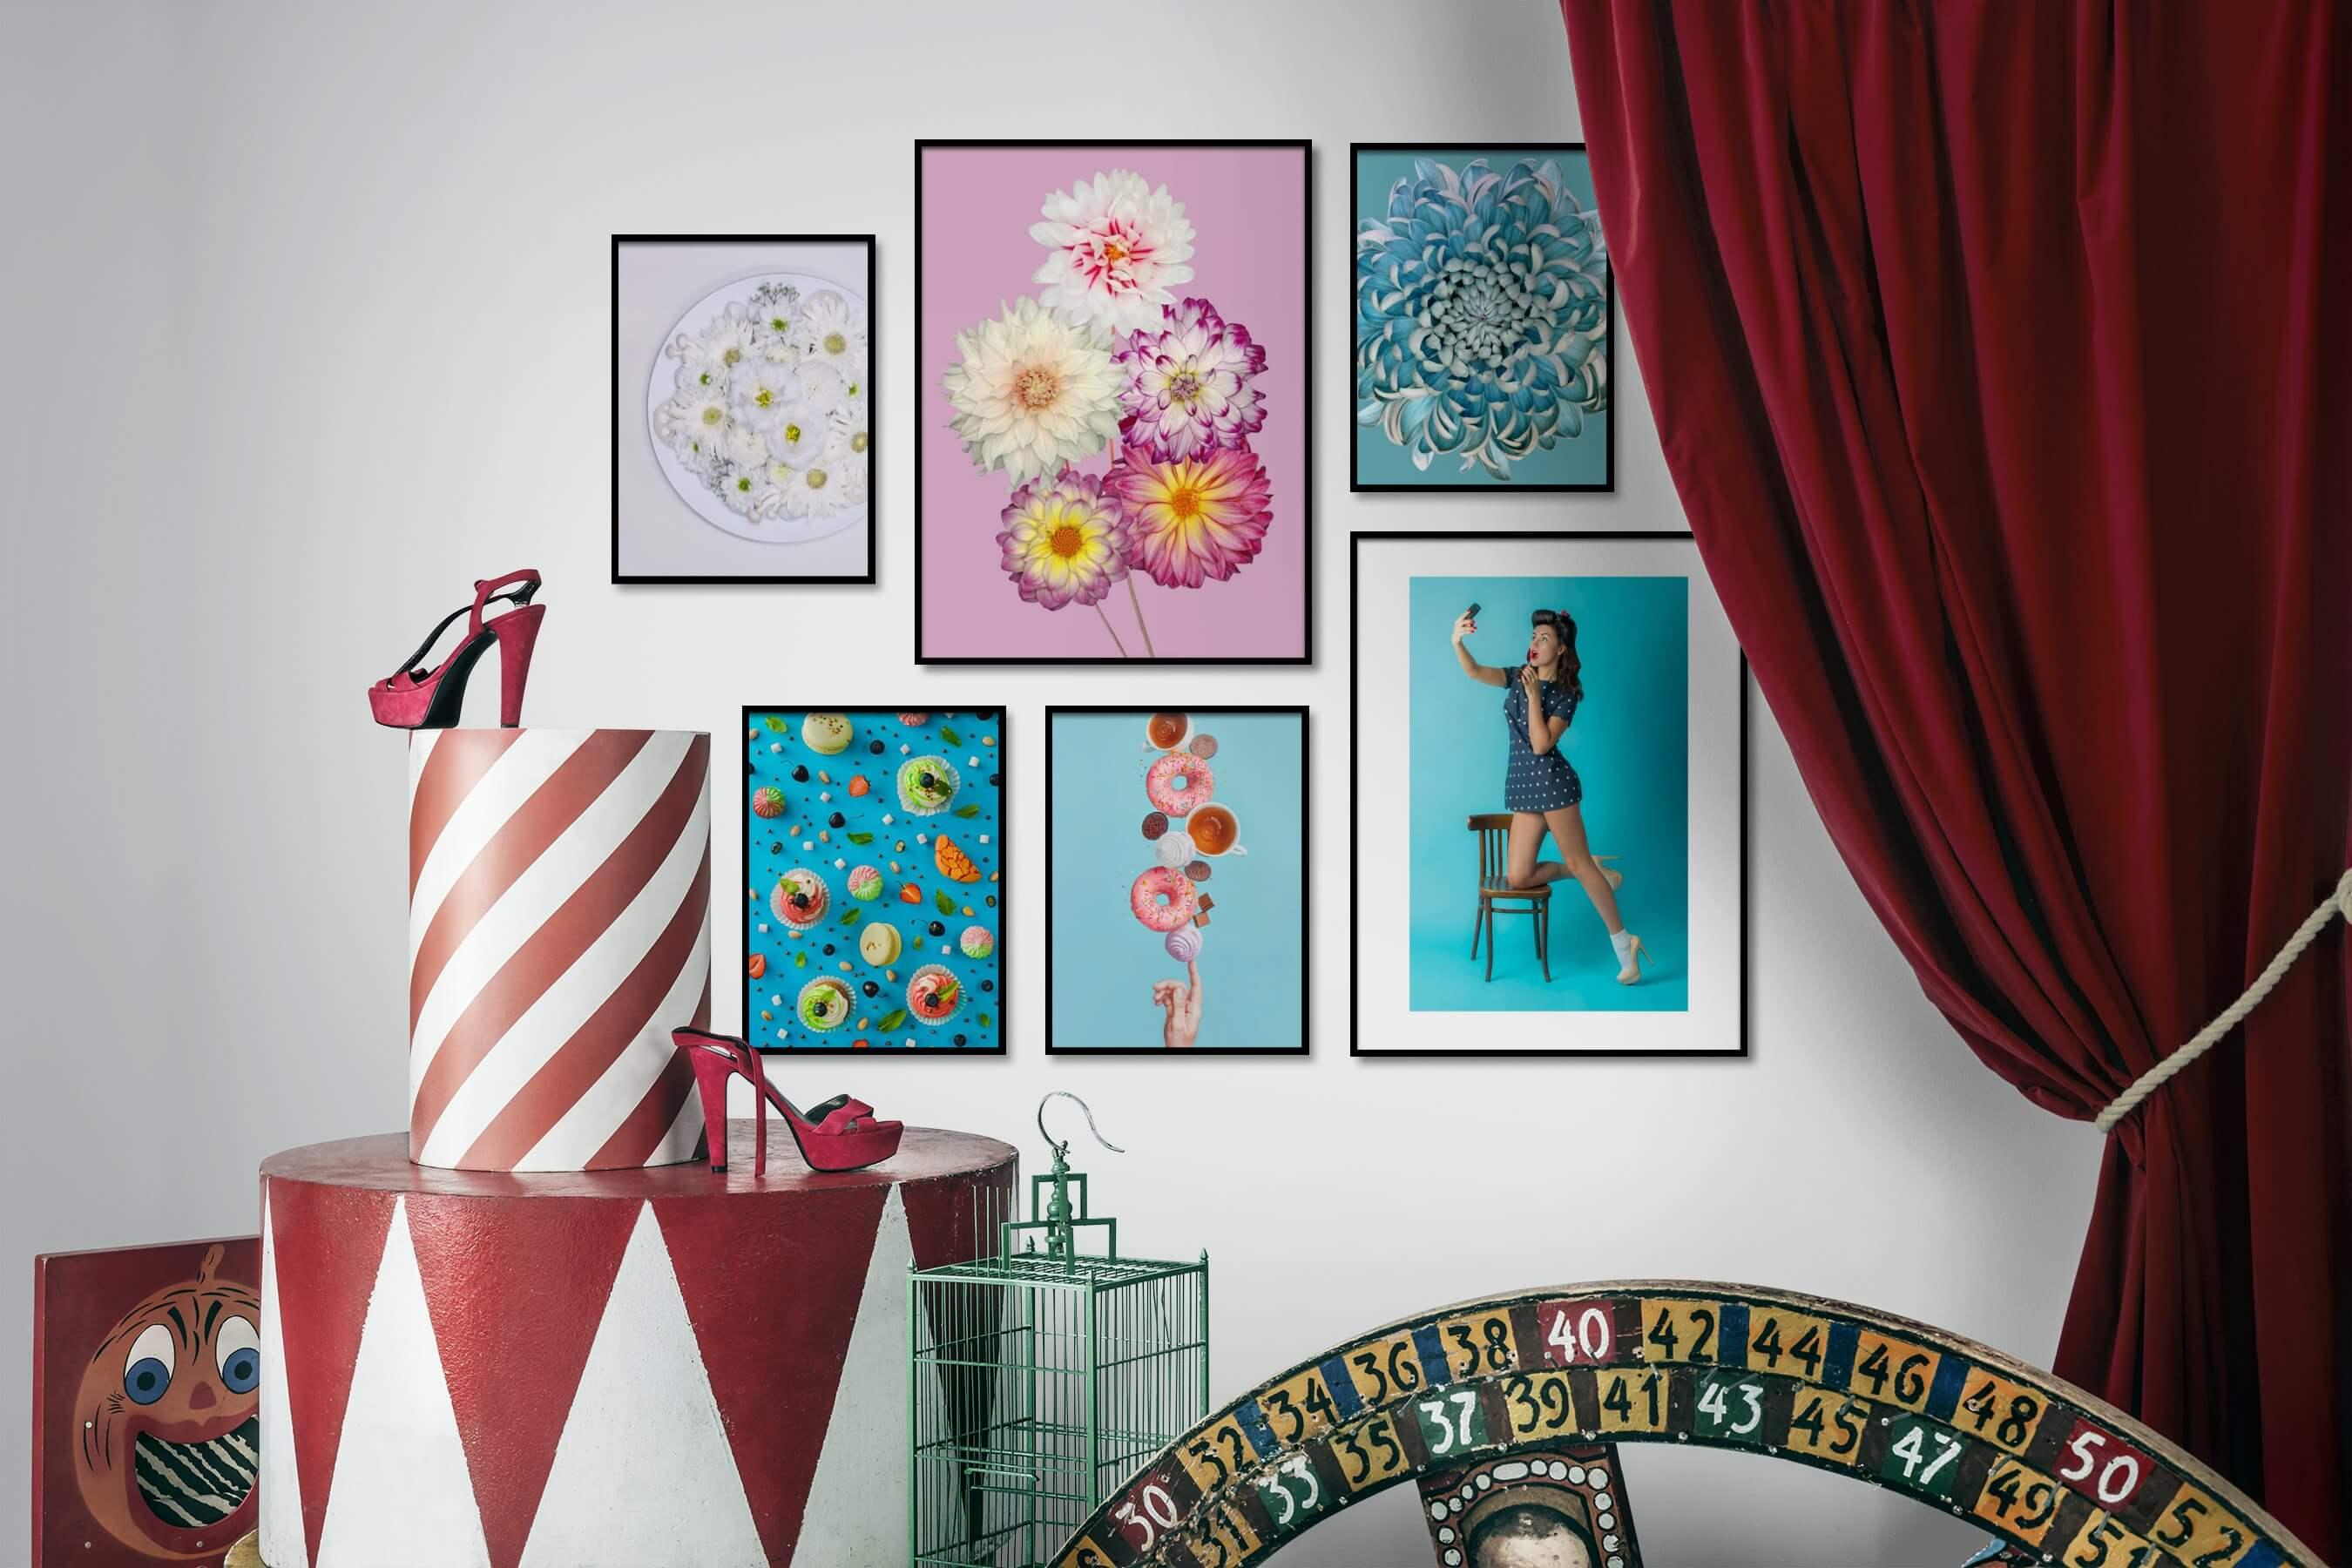 Gallery wall idea with six framed pictures arranged on a wall depicting For the Moderate, Flowers & Plants, Colorful, Vintage, and Fashion & Beauty